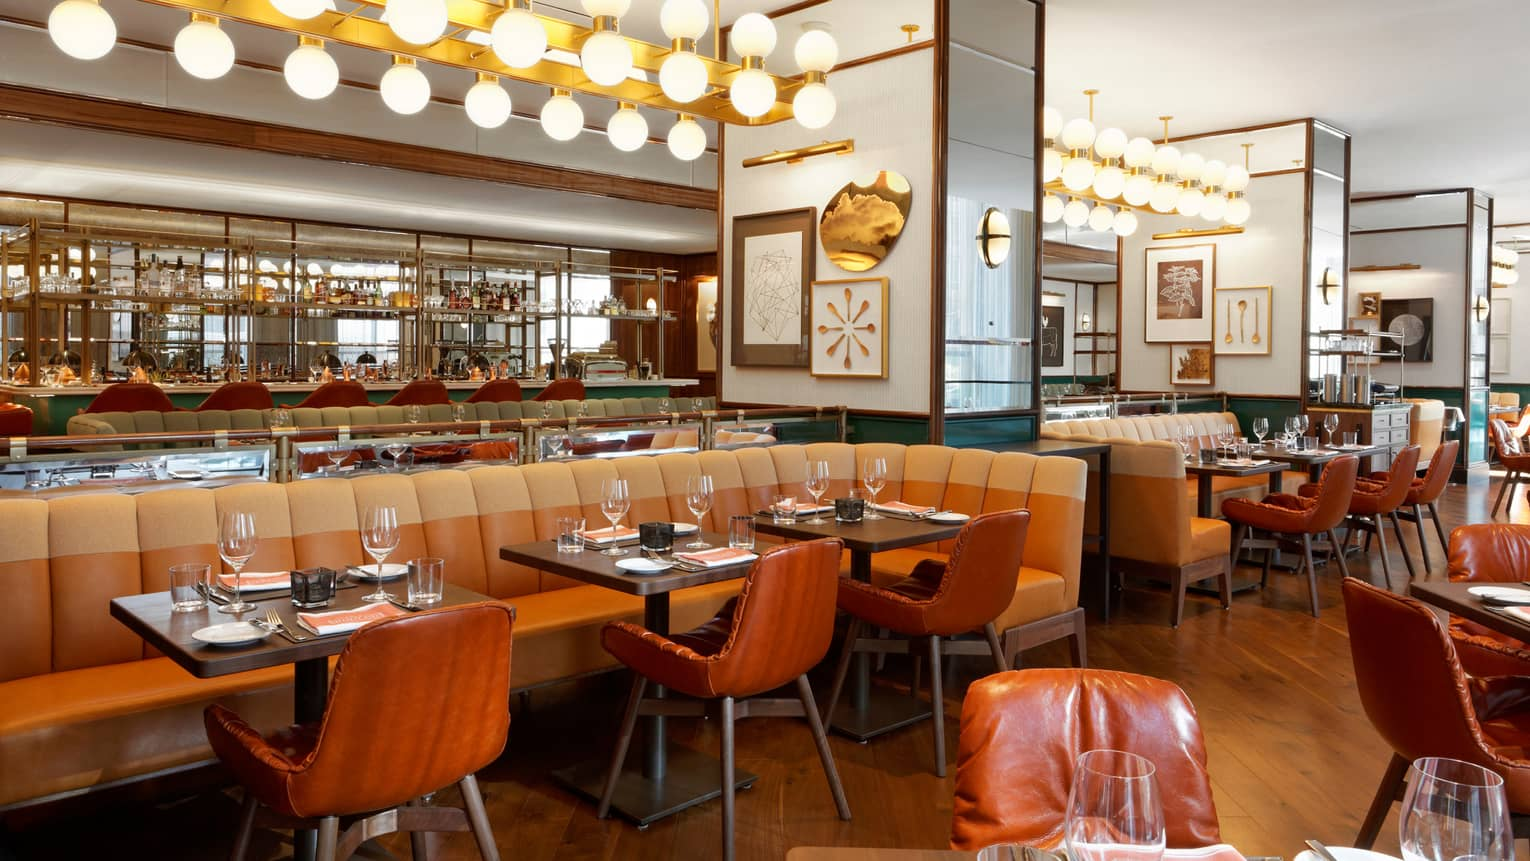 Cafe Boulud orange leather chairs, long banquette under row of globe lights